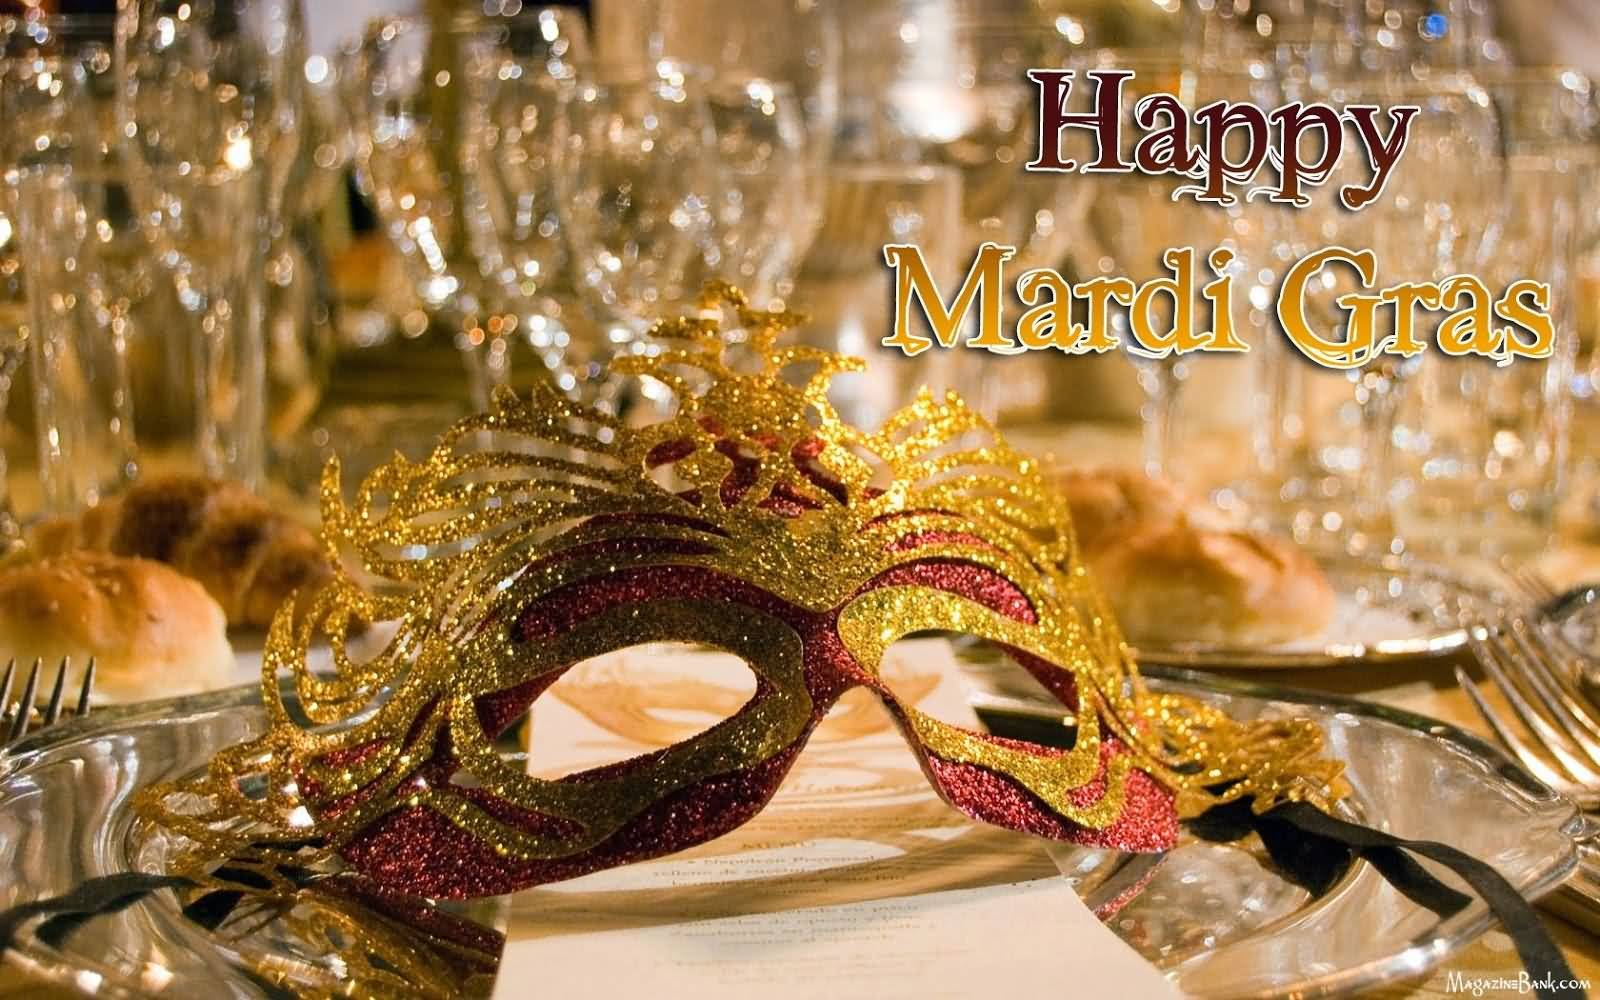 30 Most Beautiful Mardi Gras 2017 Wish Pictures And Photos